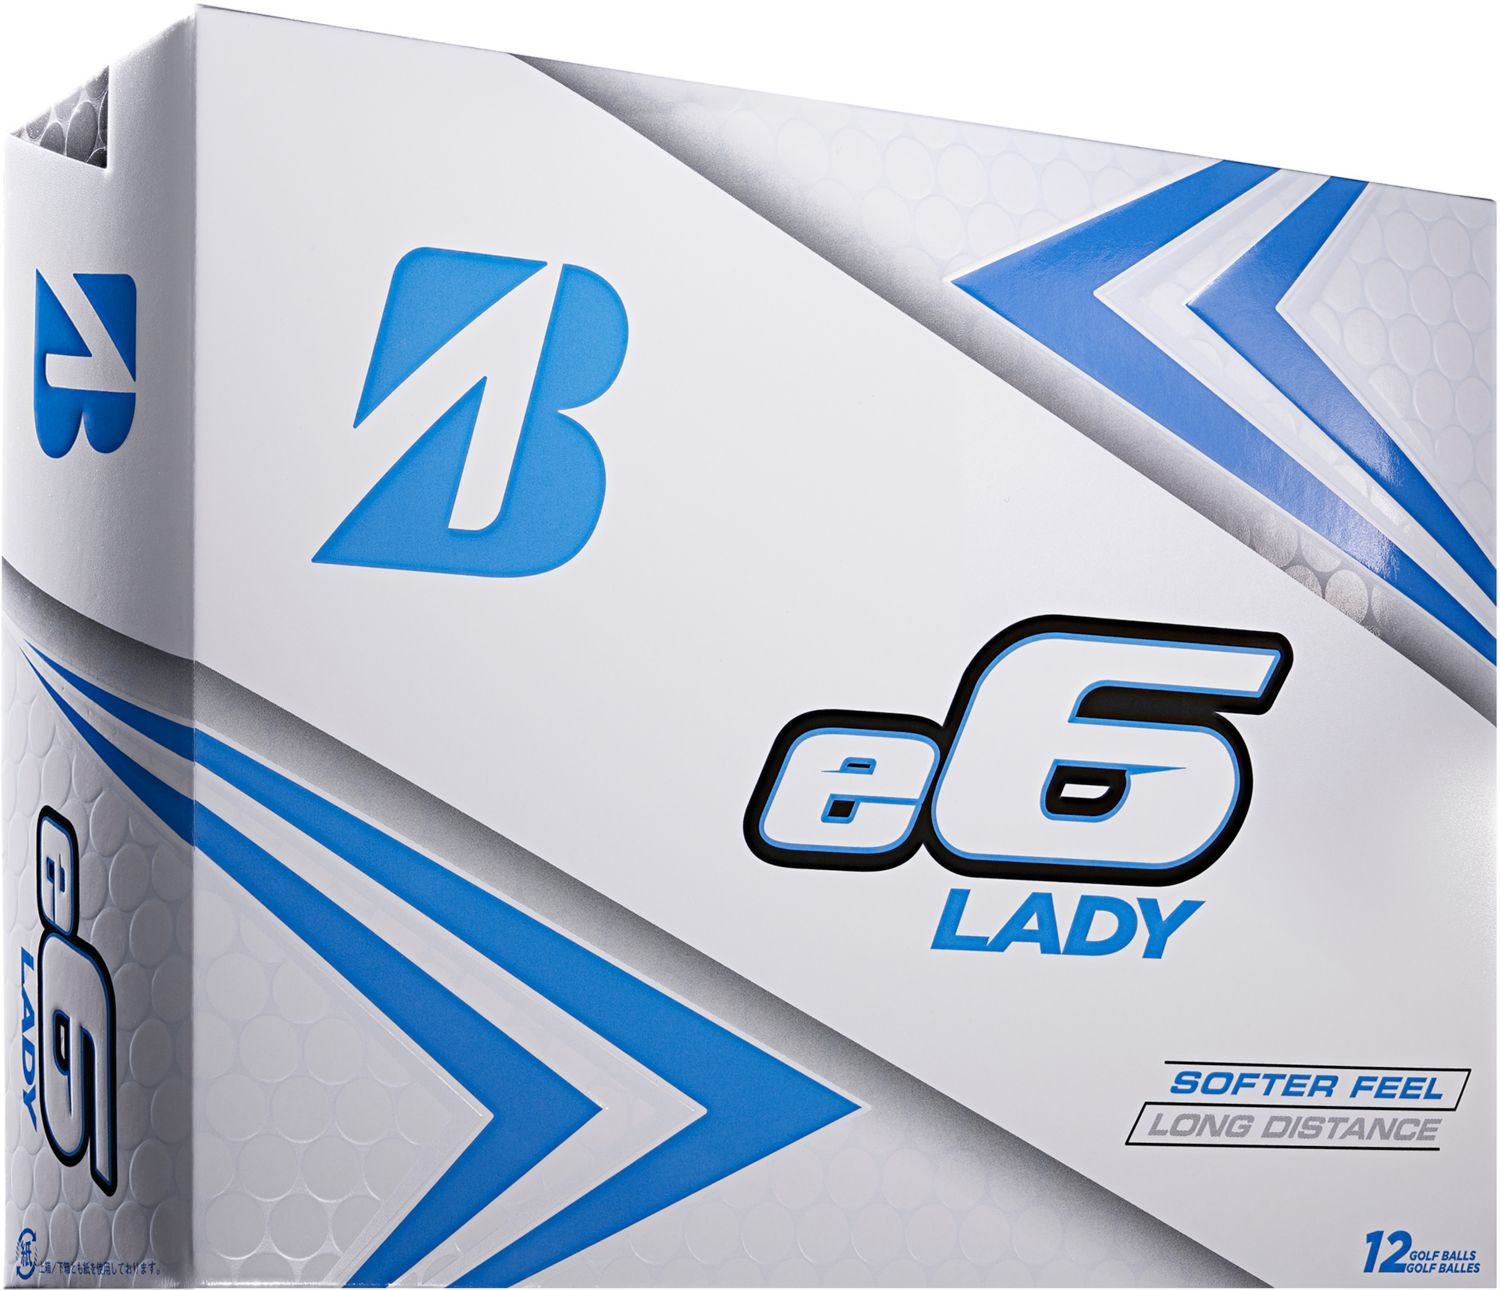 Bridgestone e6 Lady